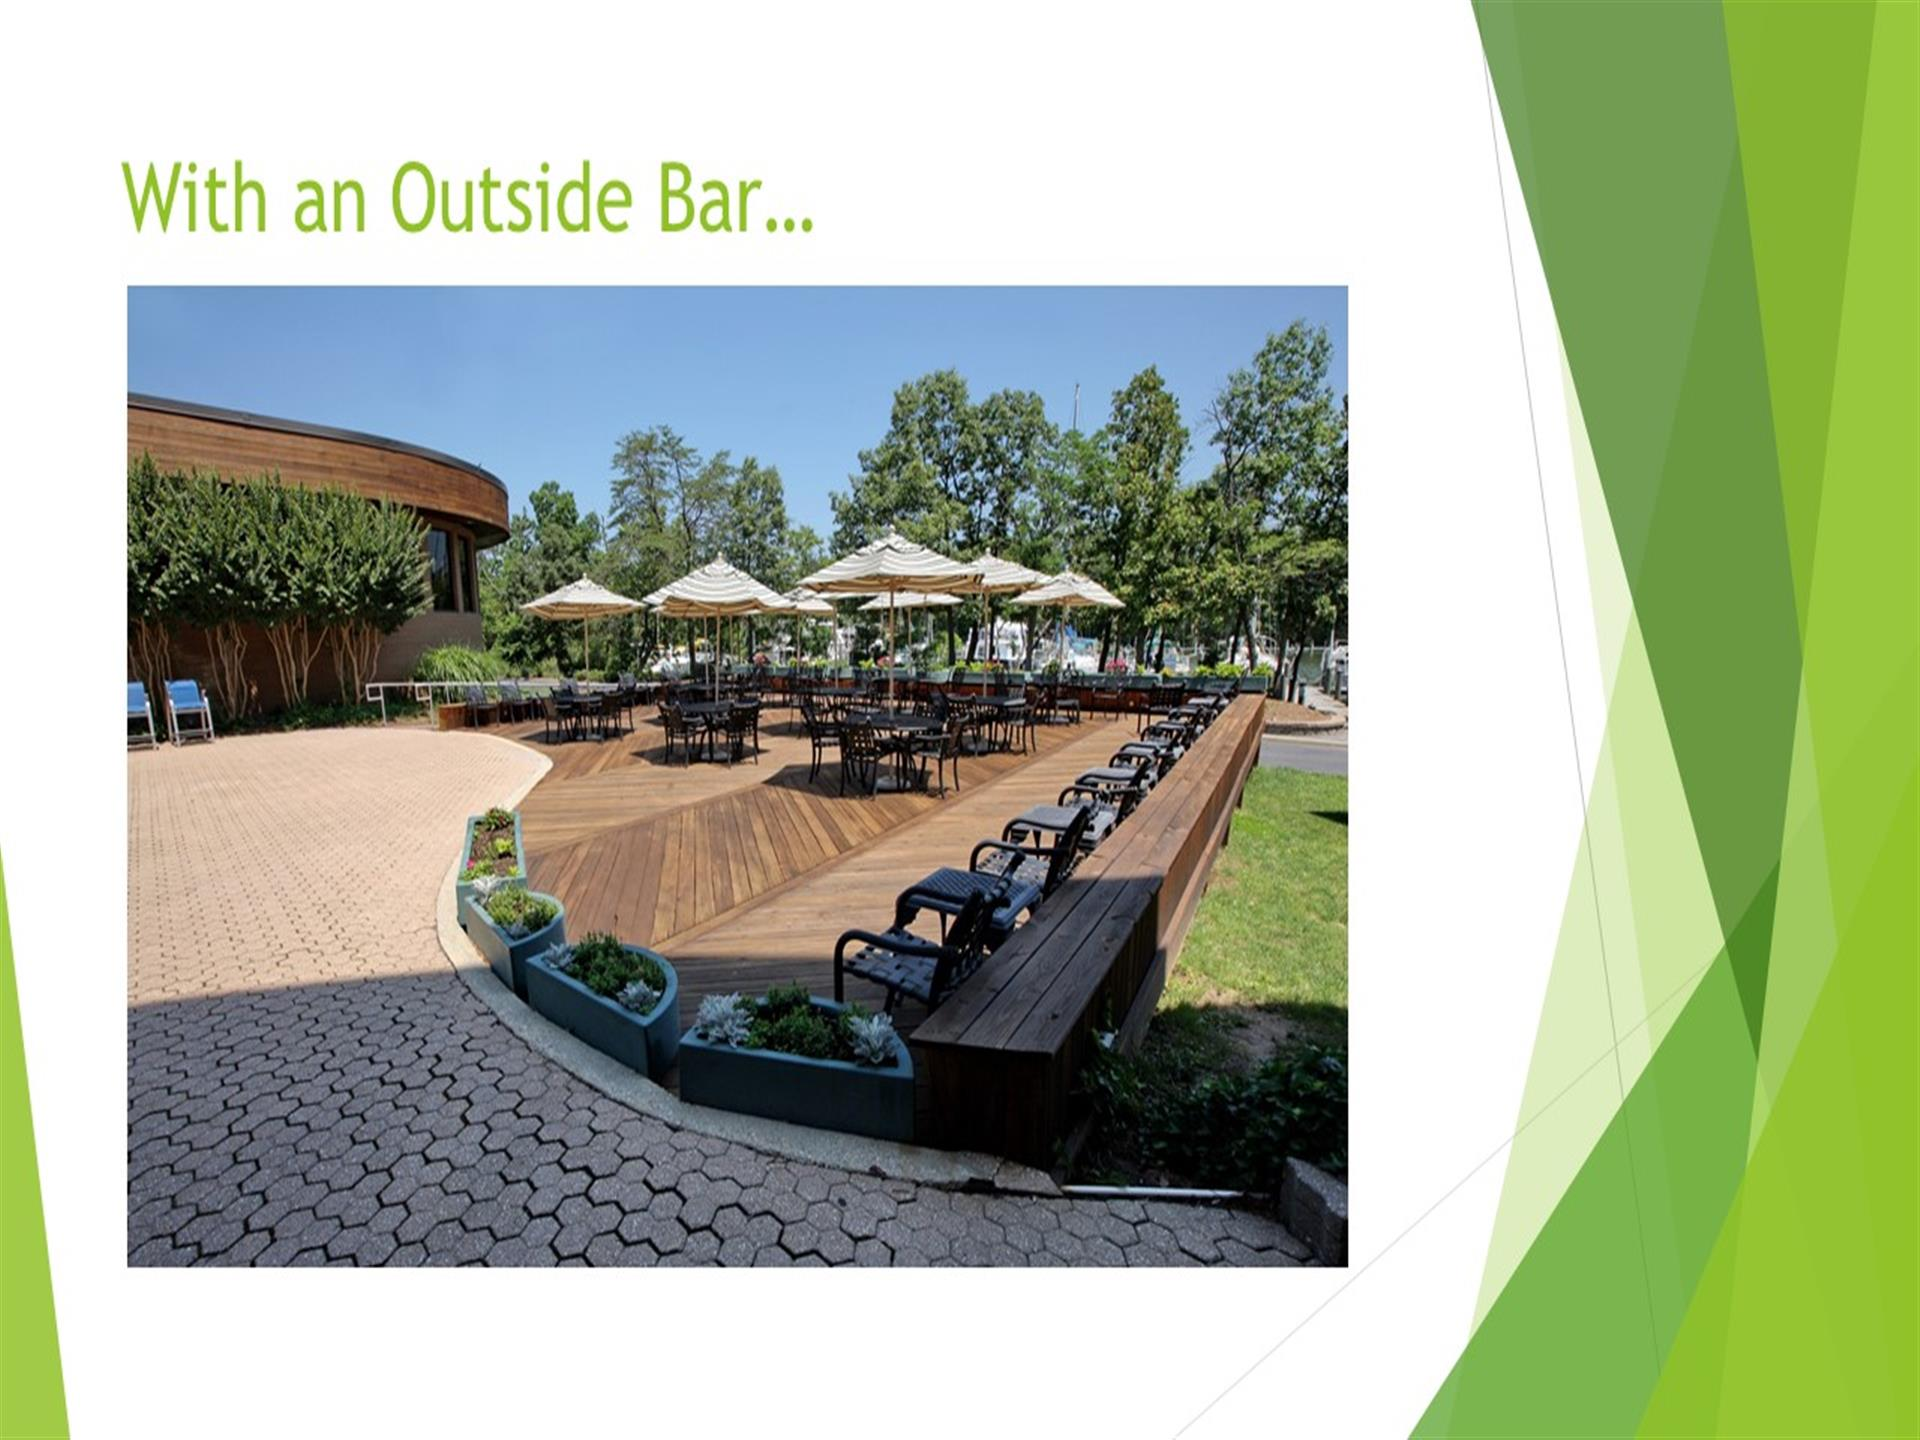 With an outside bar...outdoor deck with tables, umbrellas and chairs